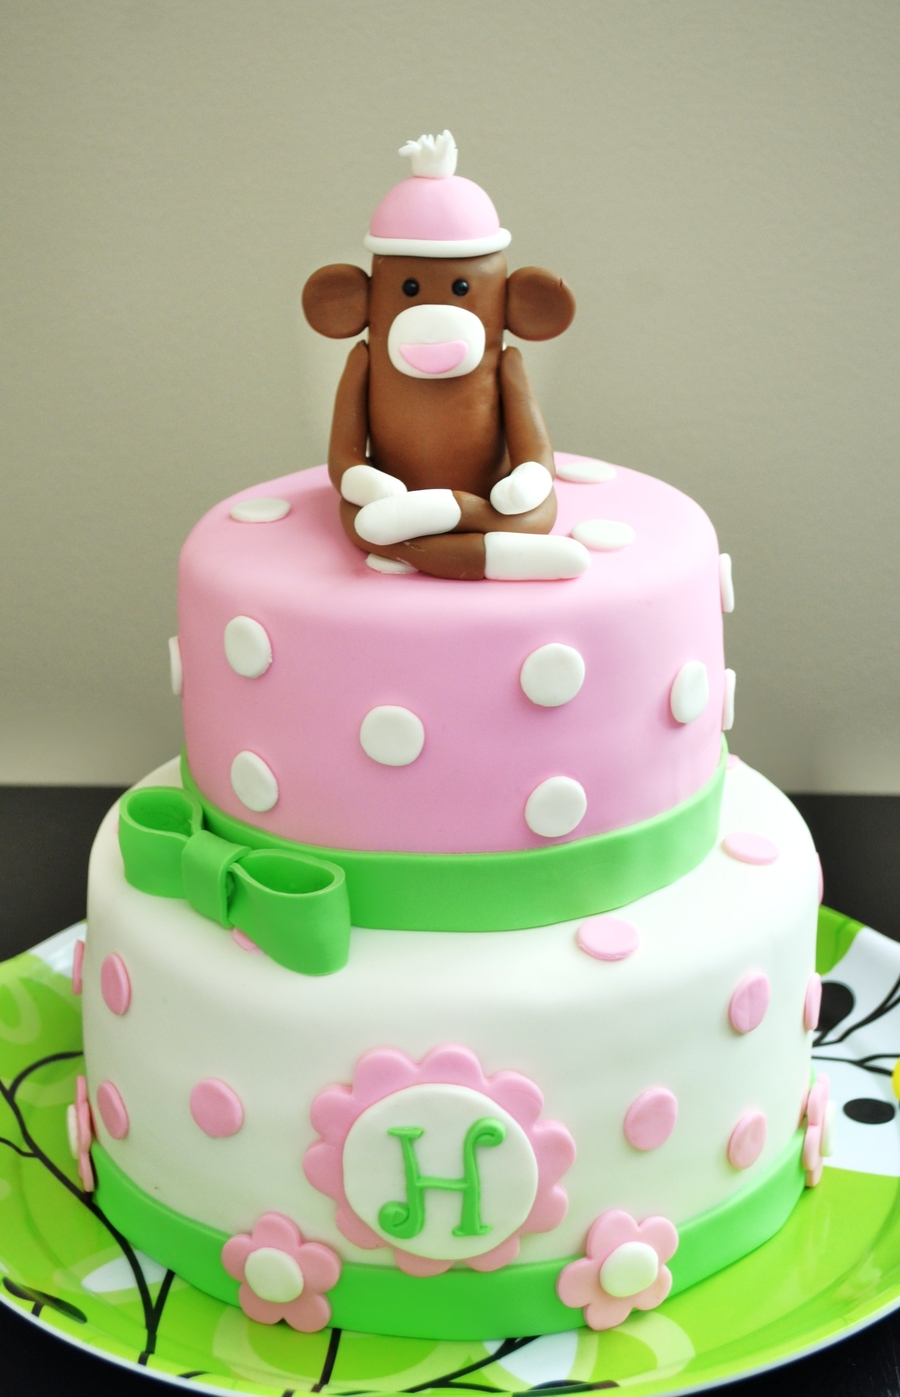 Girly Sock Monkey on Cake Central